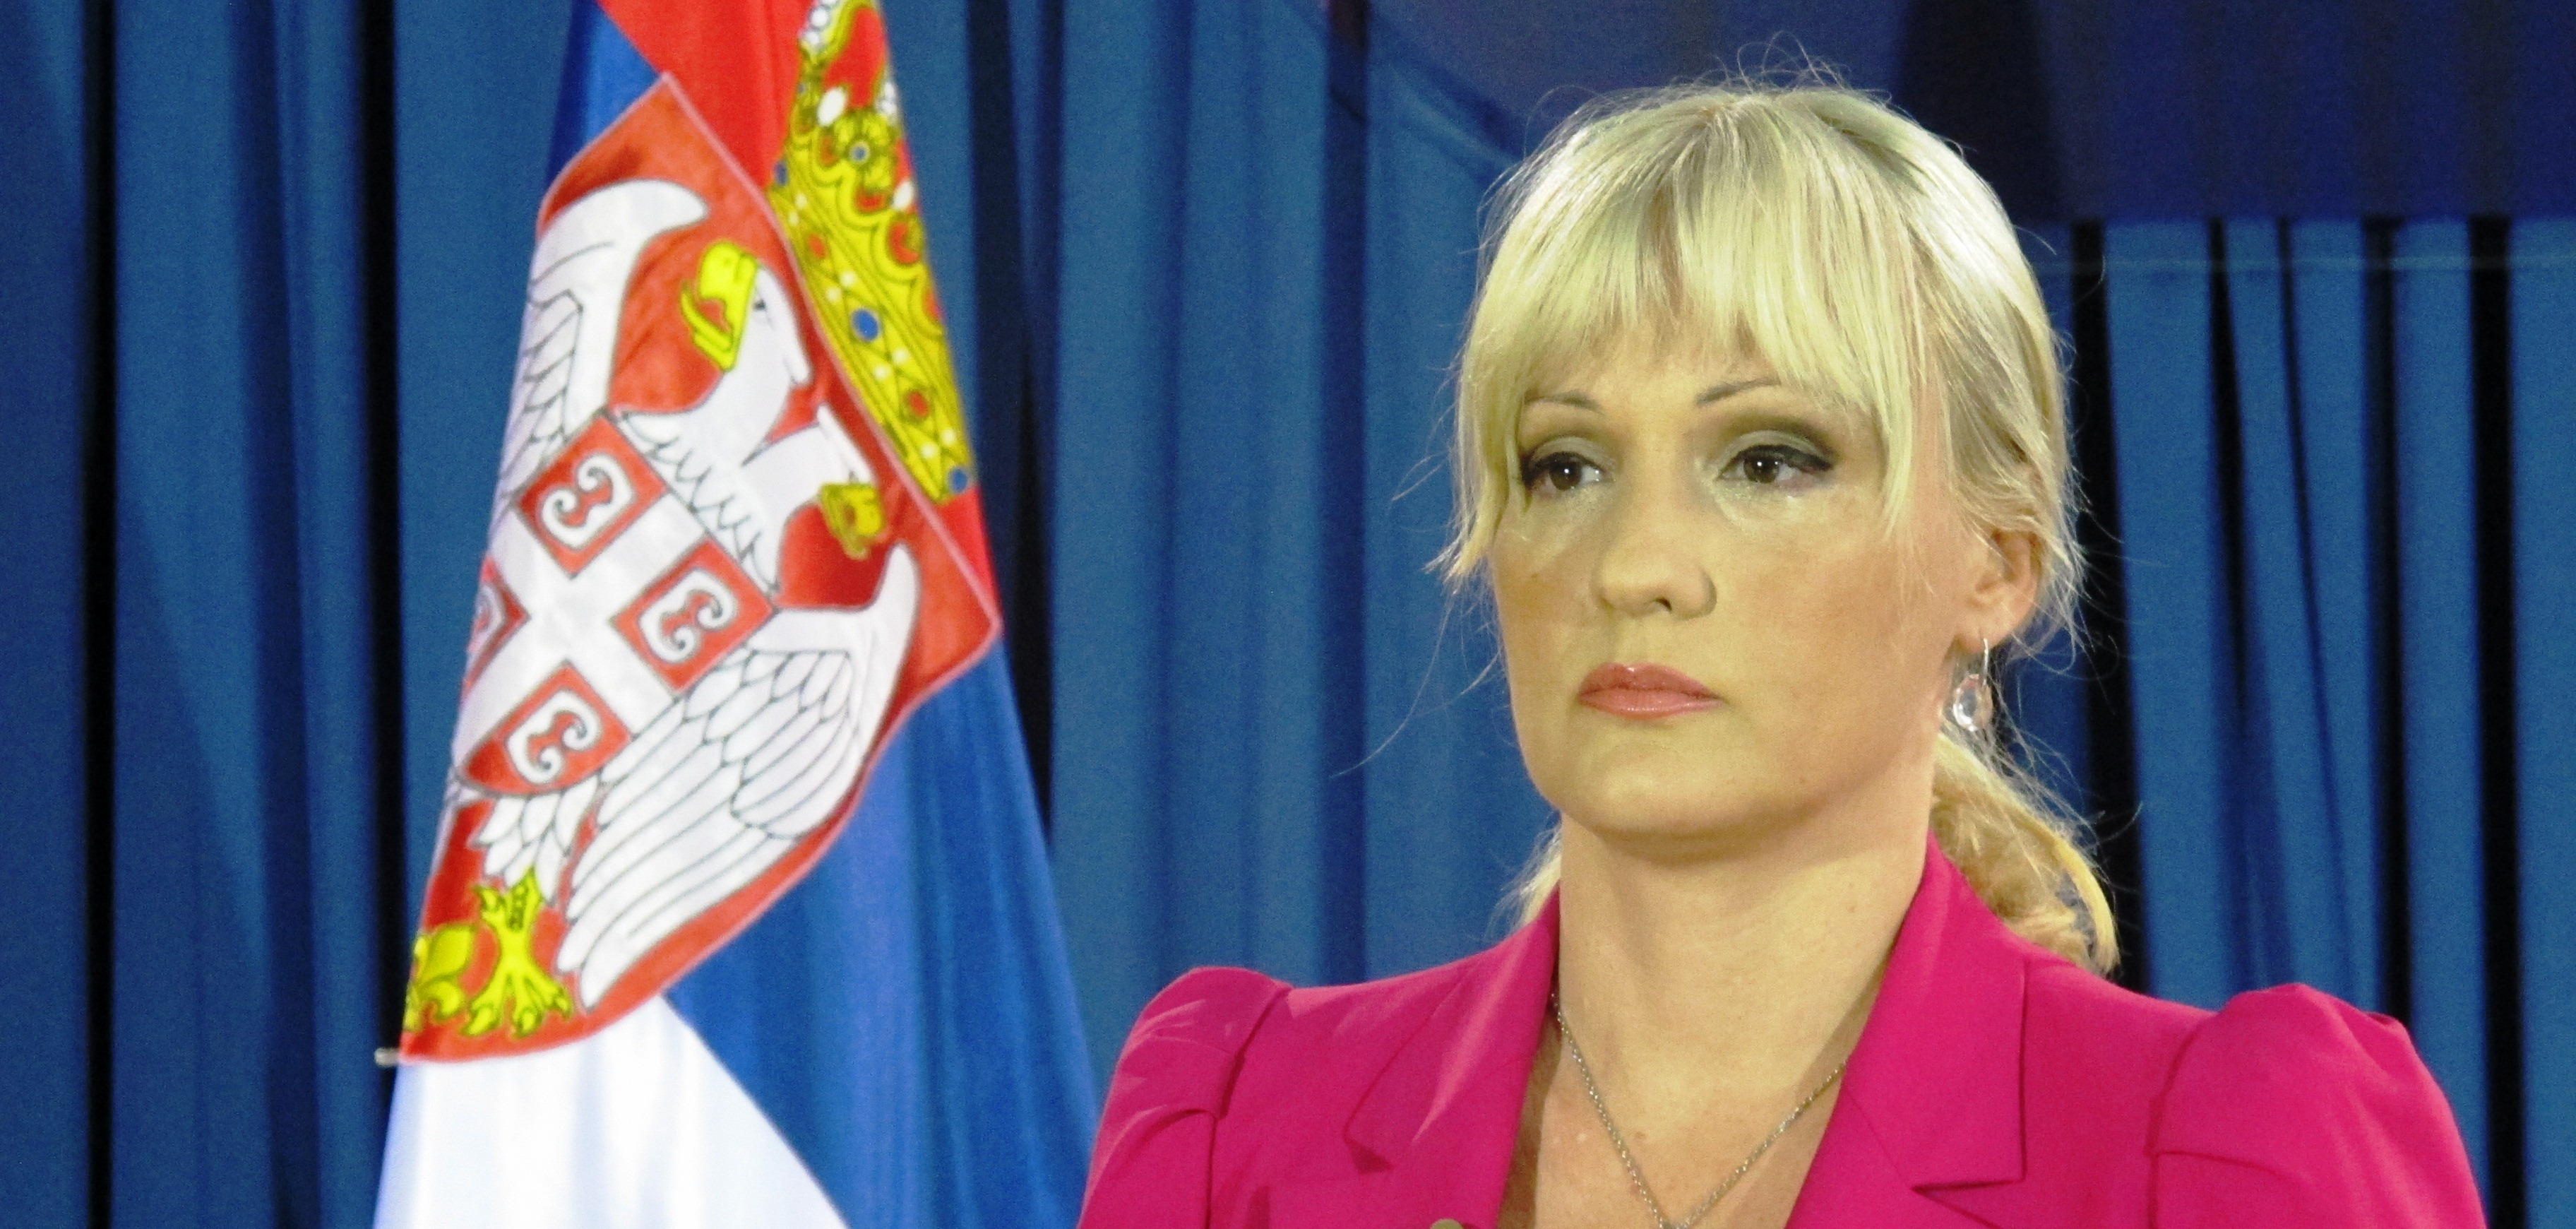 Serbian President aide: 'There is a permanent campaign against president Nikolic'